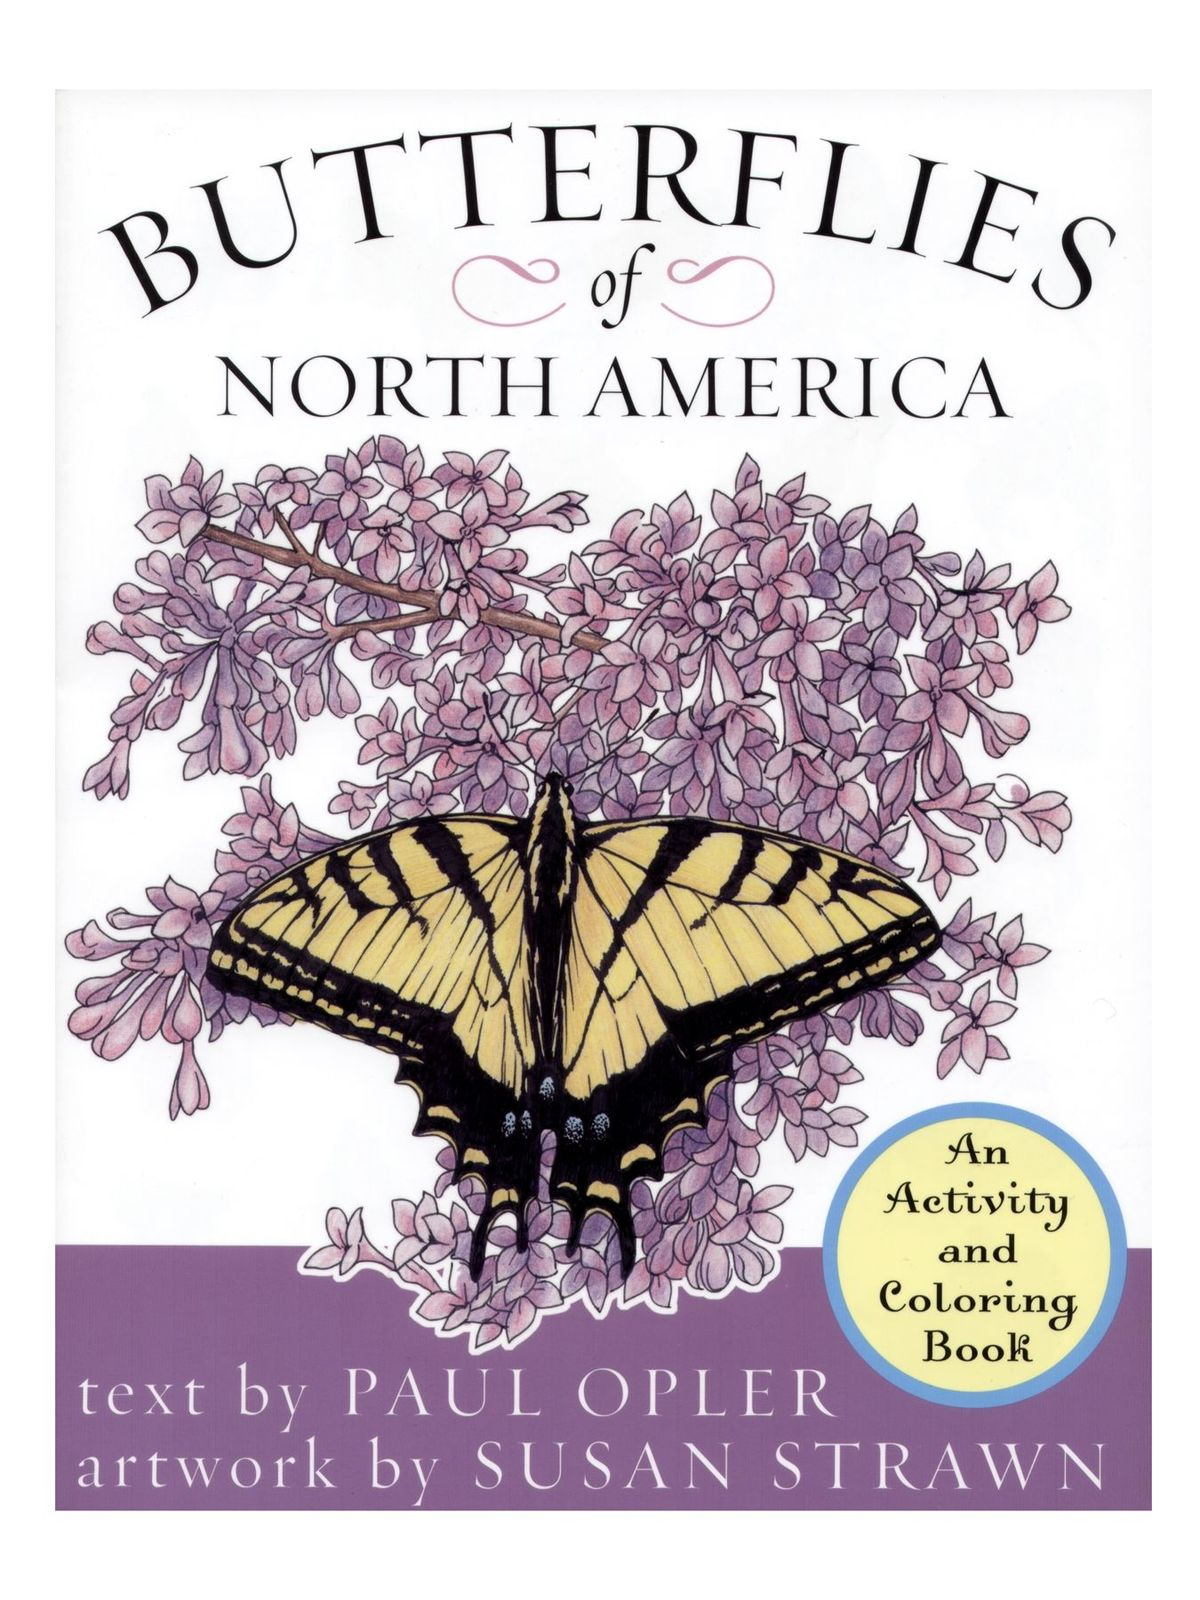 Roberts Rinehart - Butterflies of North America: An Activity and Coloring Book